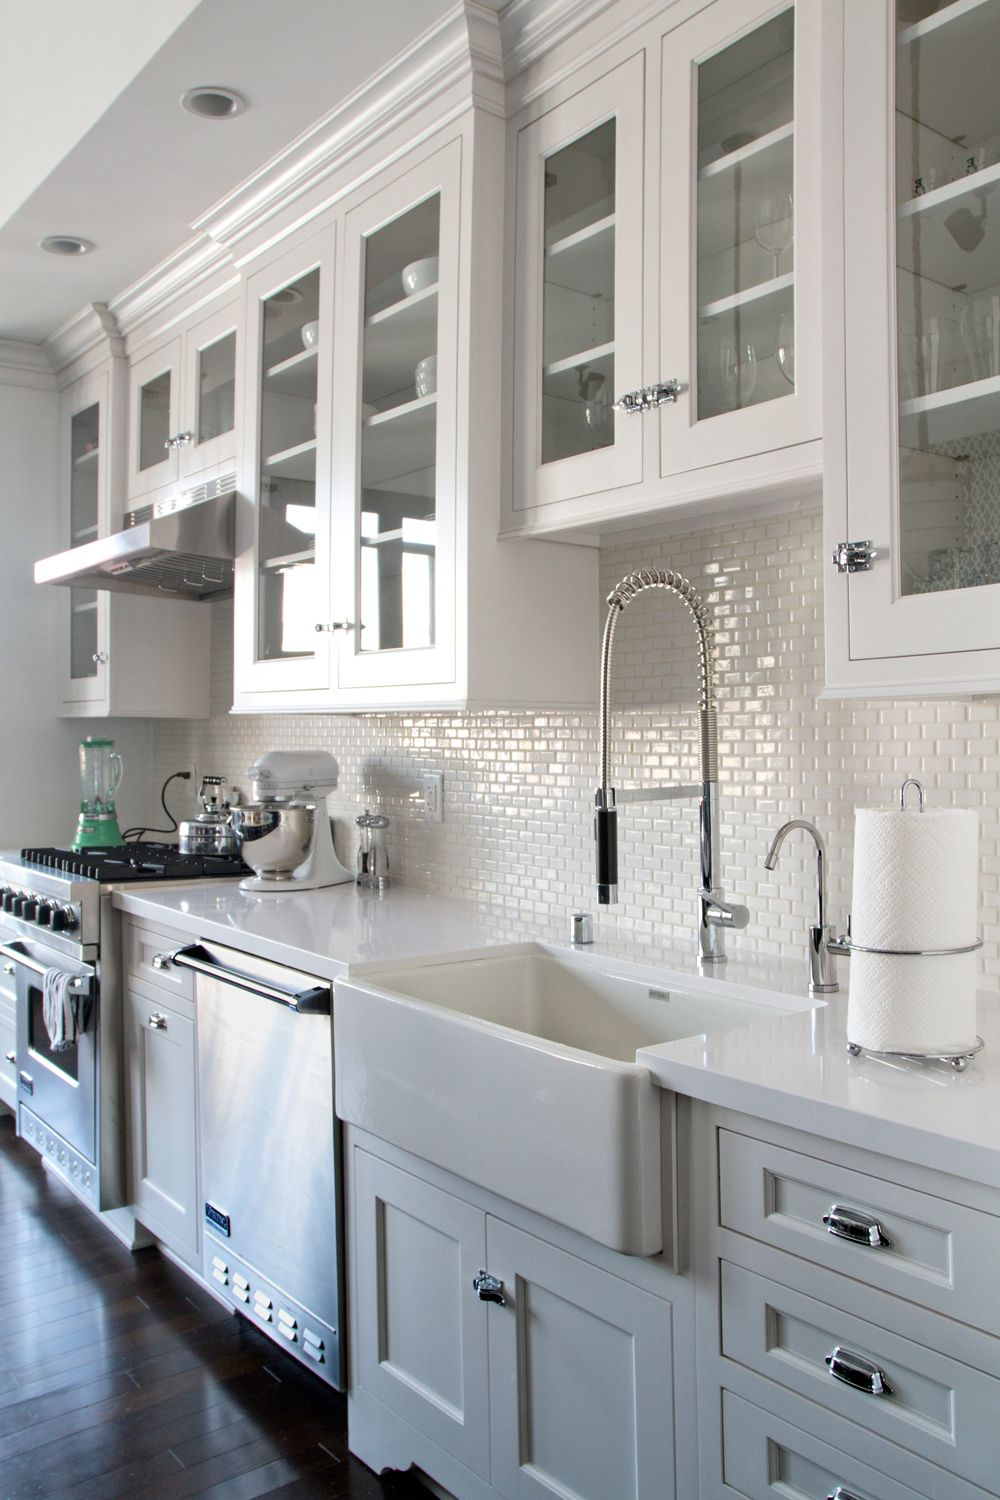 White Kitchen Cabinets Glass Doors Dark Wood Floors Backsplash White Mini Subway Tile With Images Kitchen Design Farmhouse Kitchen Cabinets Kitchen Cabinets Makeover